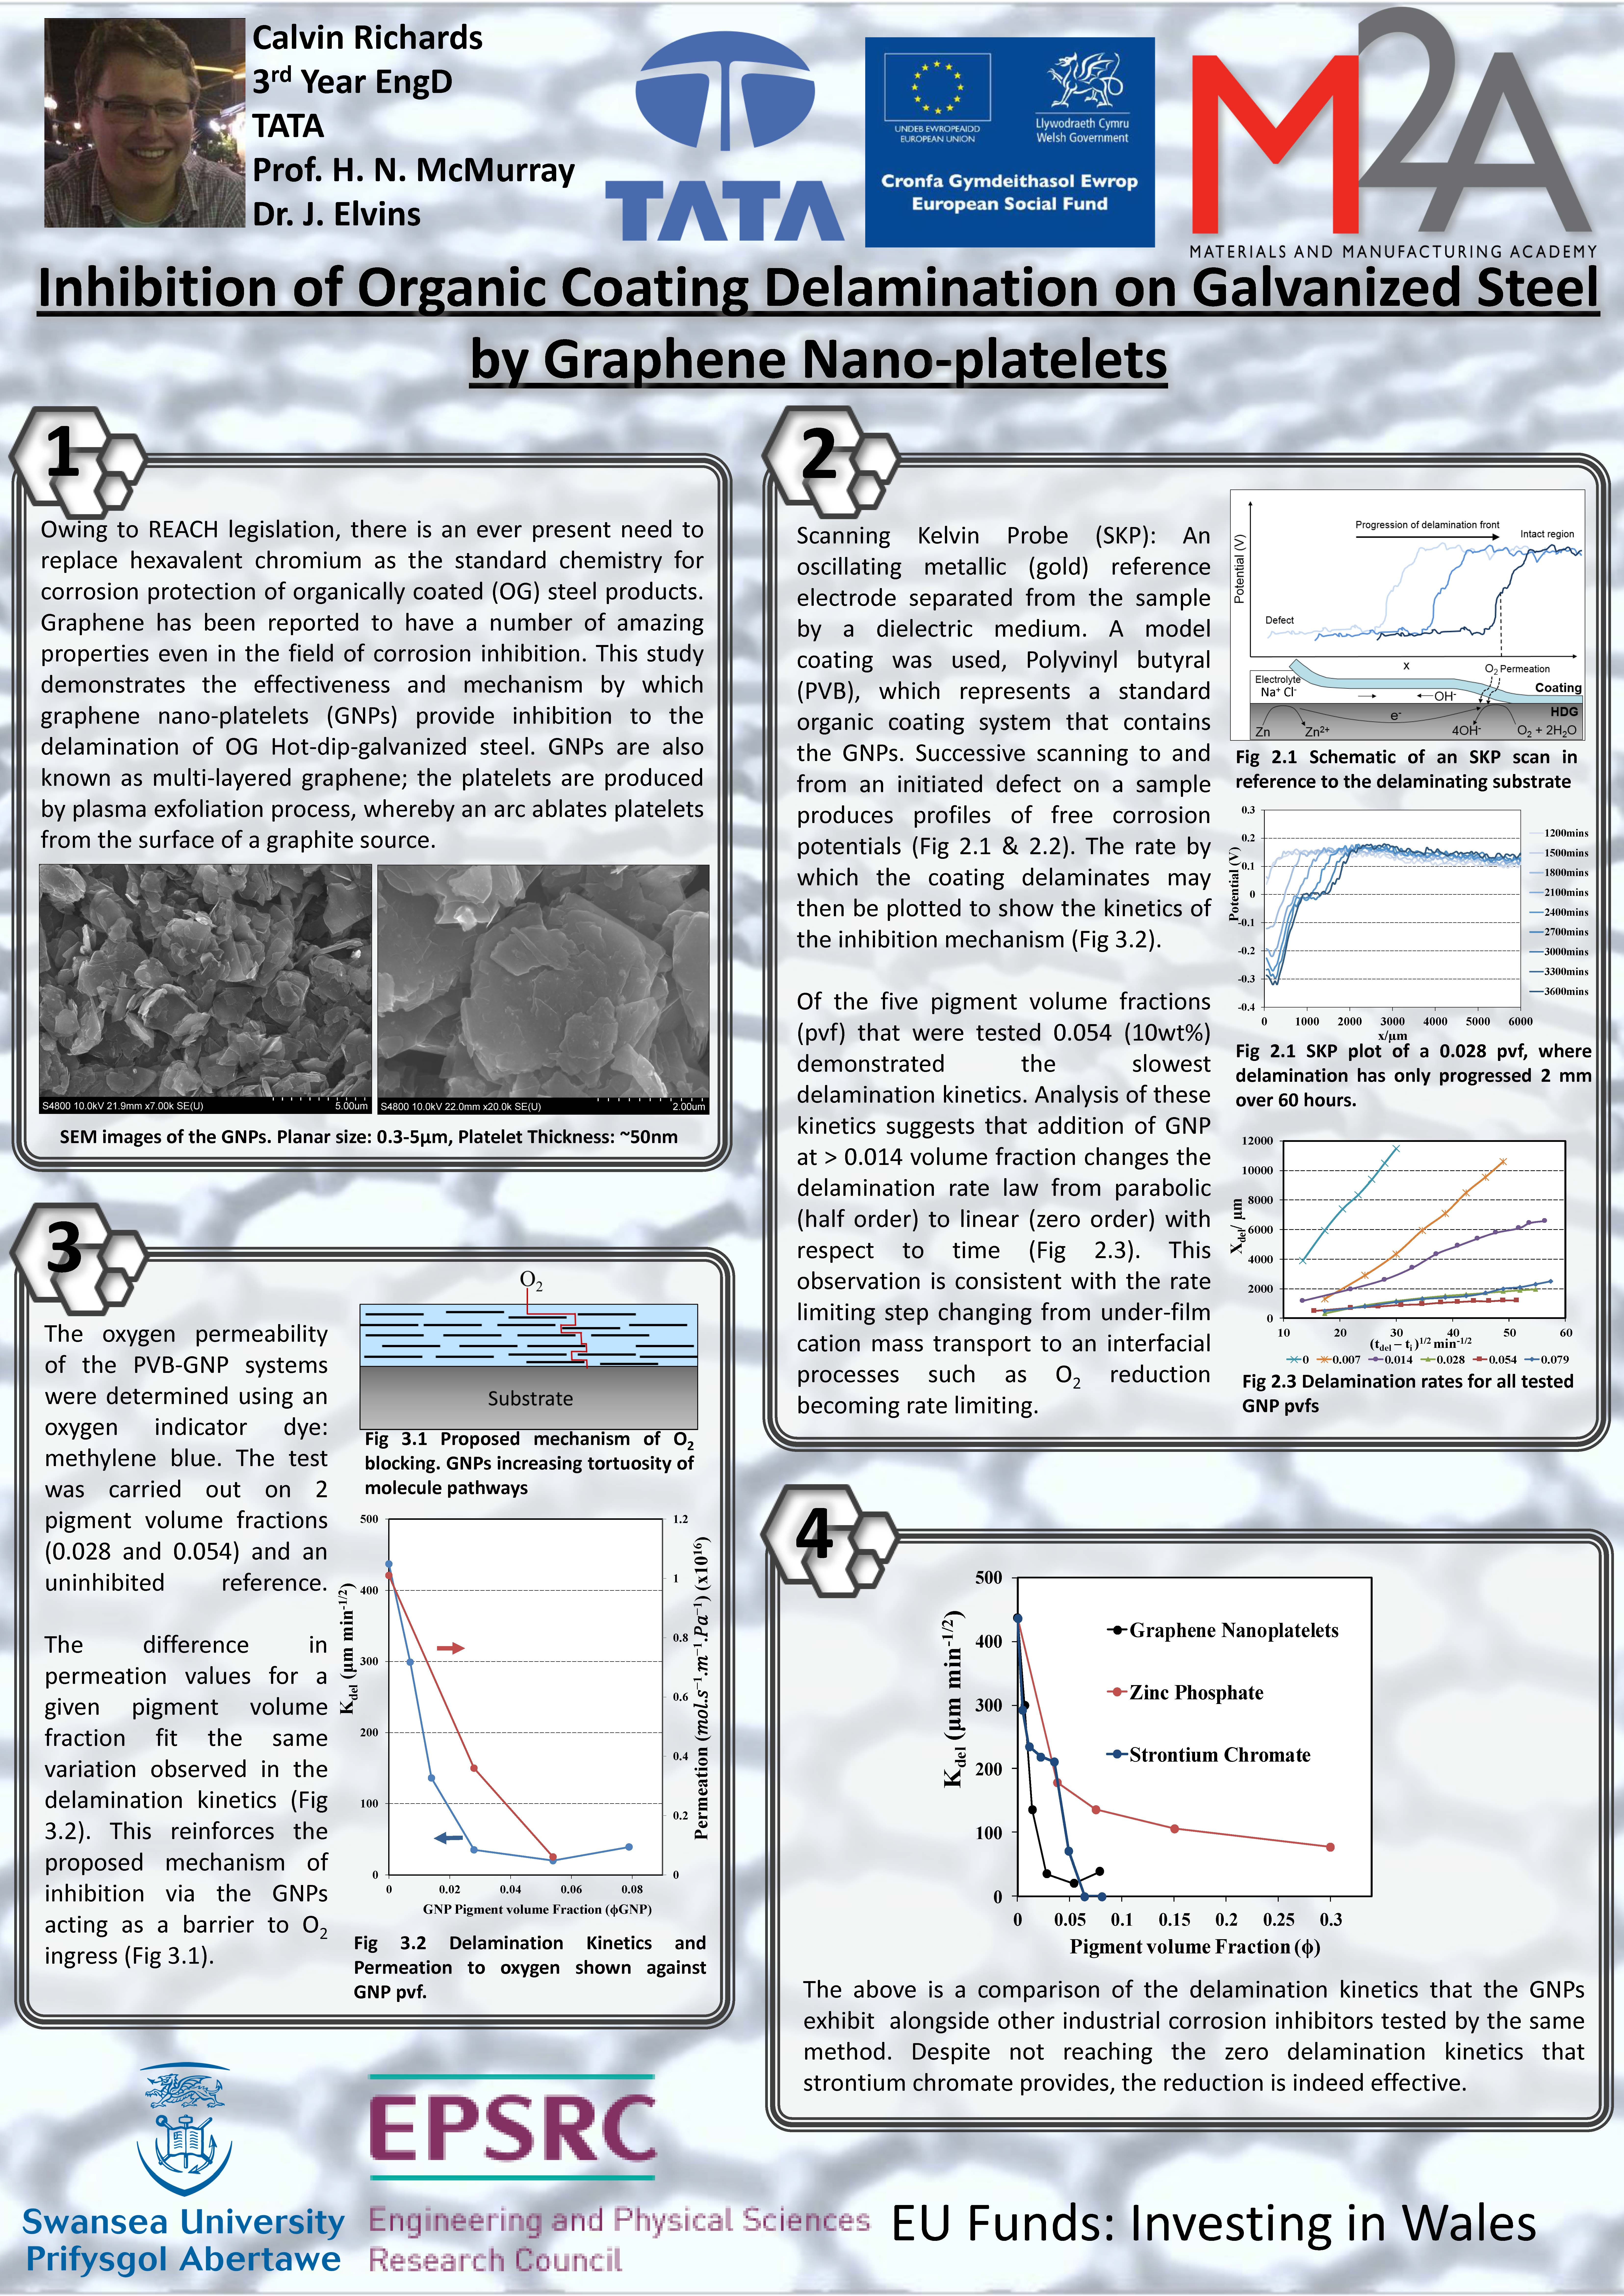 Inhibition of Organic Coating Delamination on Galvanized Steel by Graphene Nano-platelets